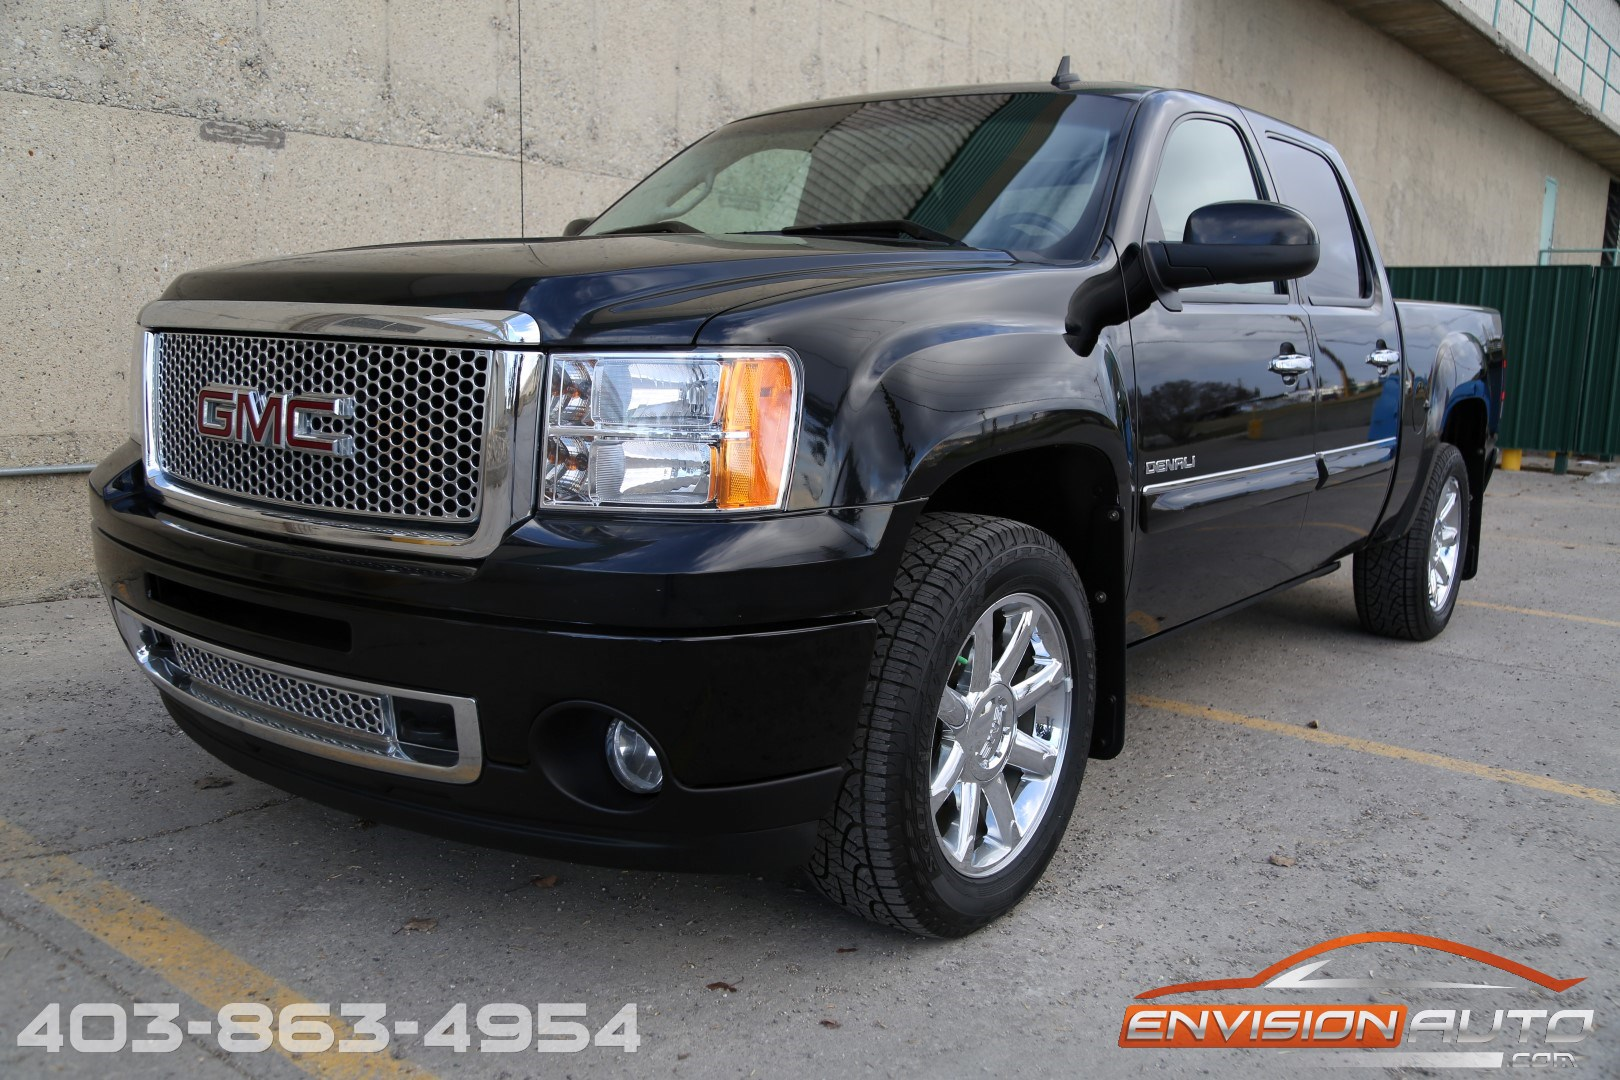 2012 gmc sierra 1500 denali crew cab awd envision auto. Black Bedroom Furniture Sets. Home Design Ideas